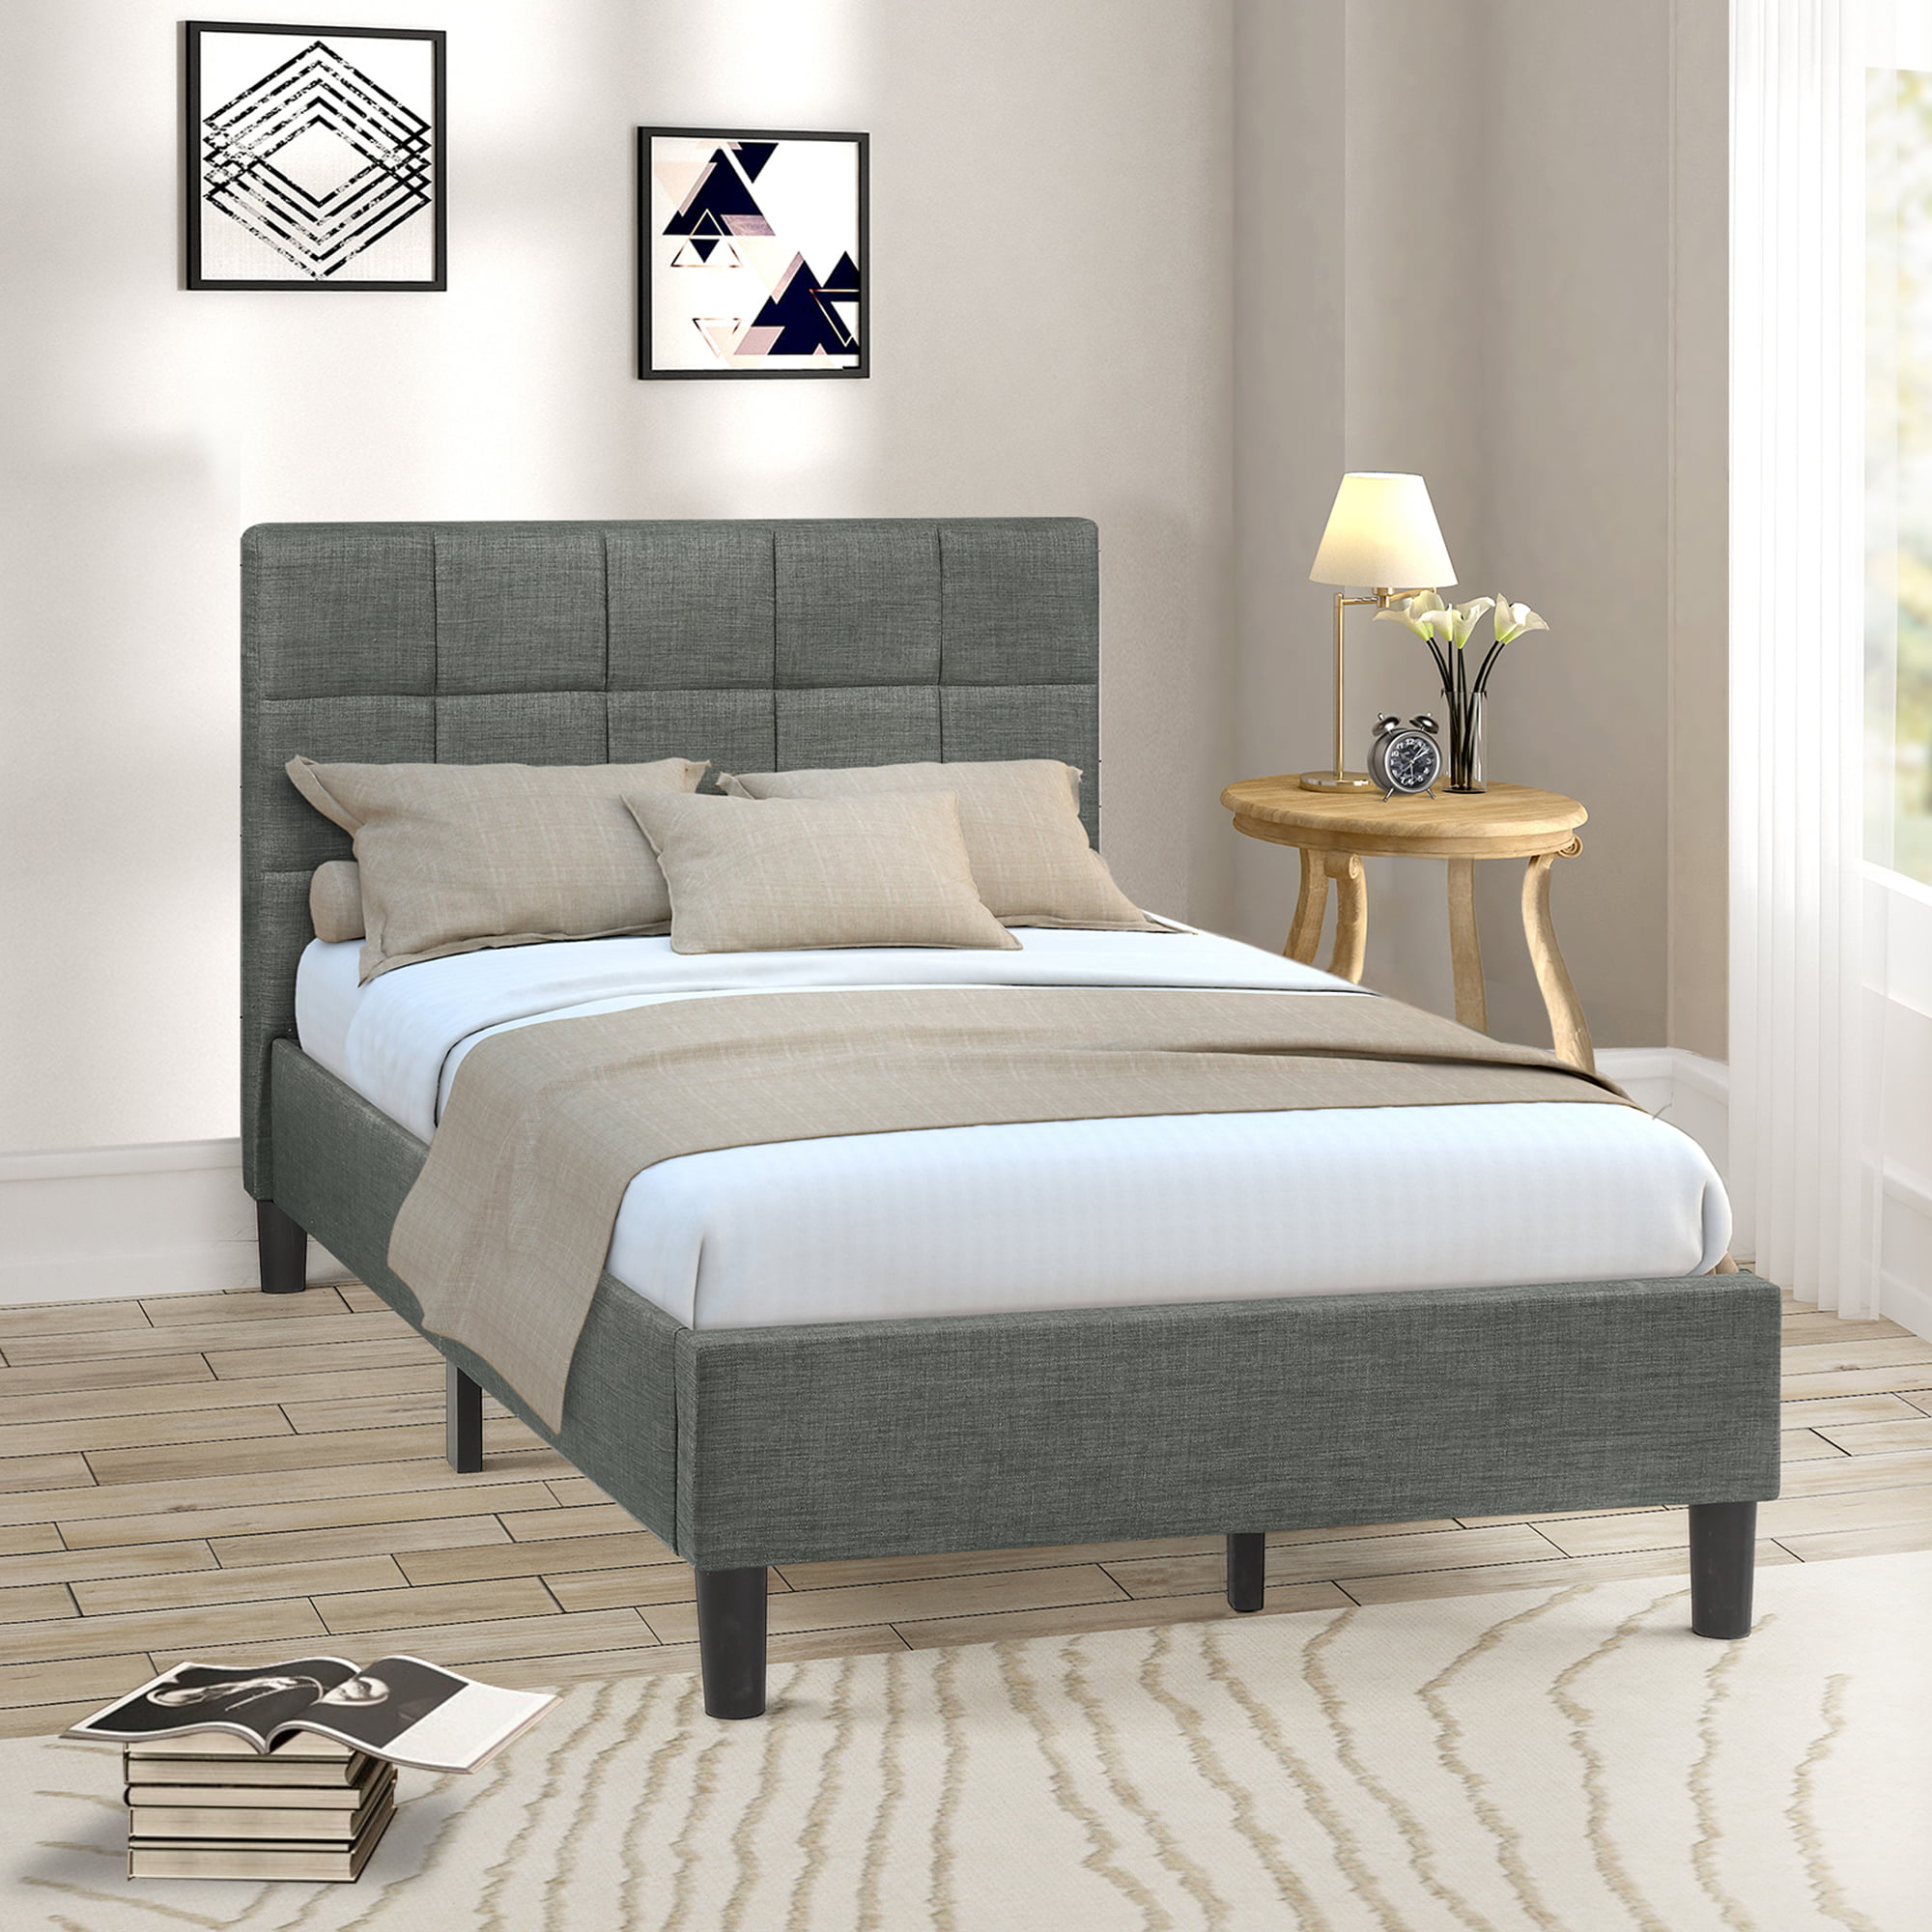 Gray Twin Bed Frame for Kids Adults, Modern Upholstered ...